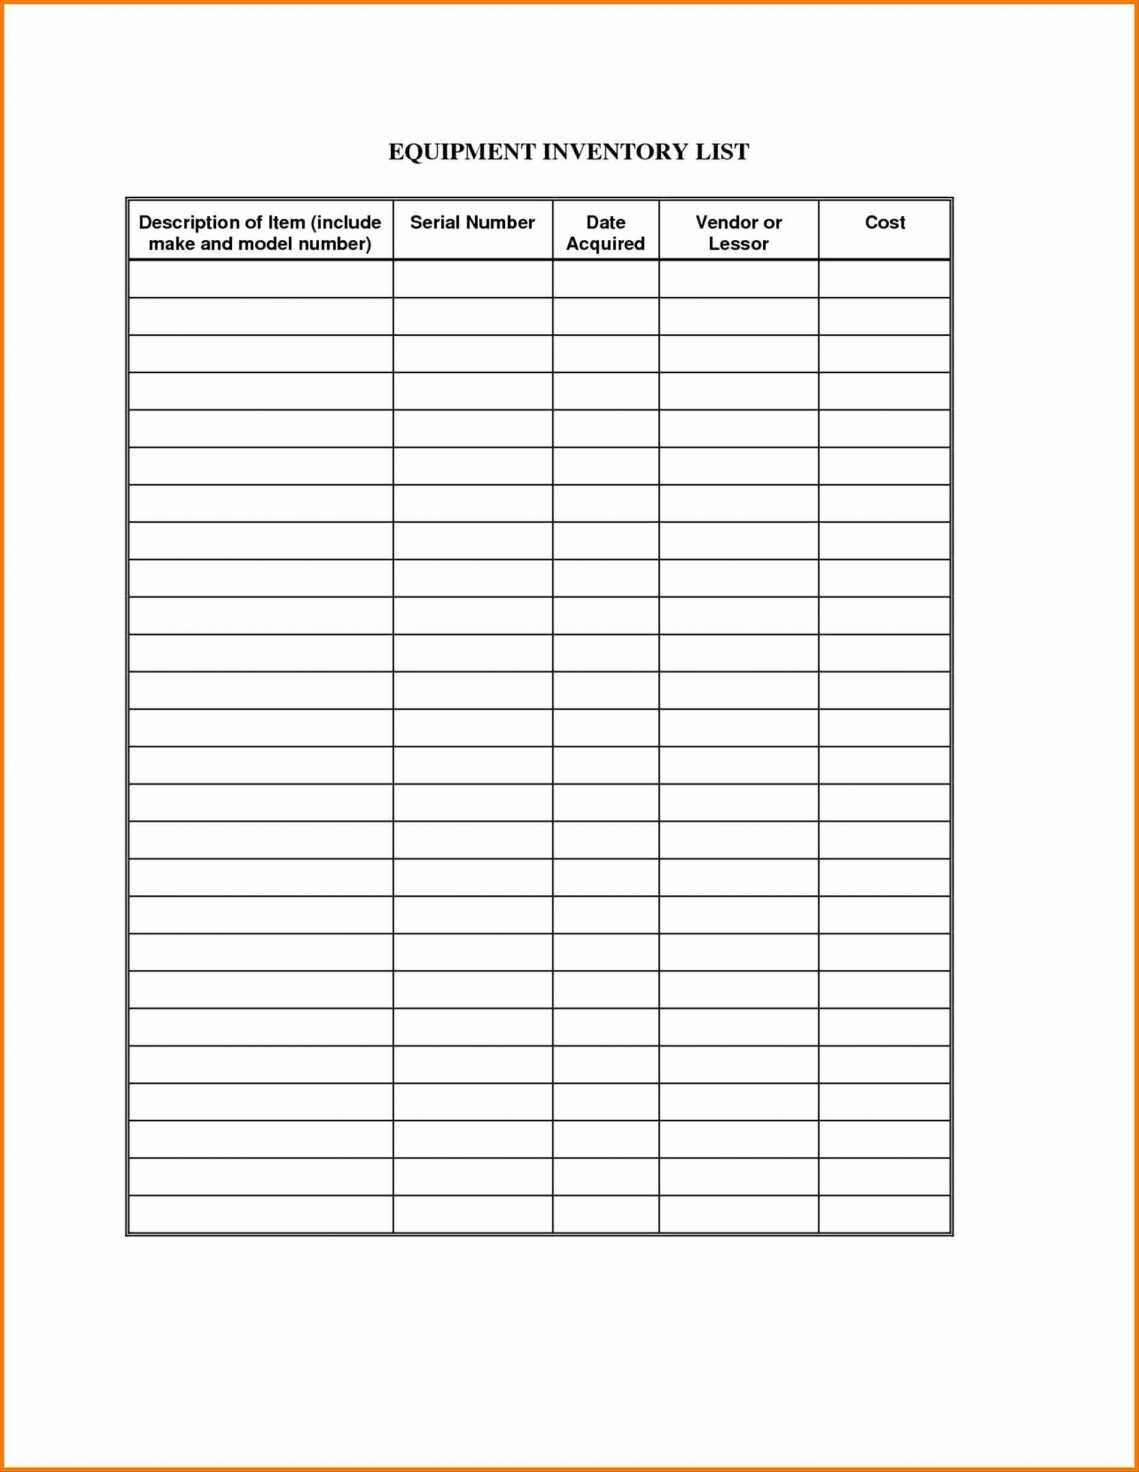 Pest Control Log Sheet Template As Well As Bakery Inventory Sheet Throughout Inventory Spreadsheet Templates